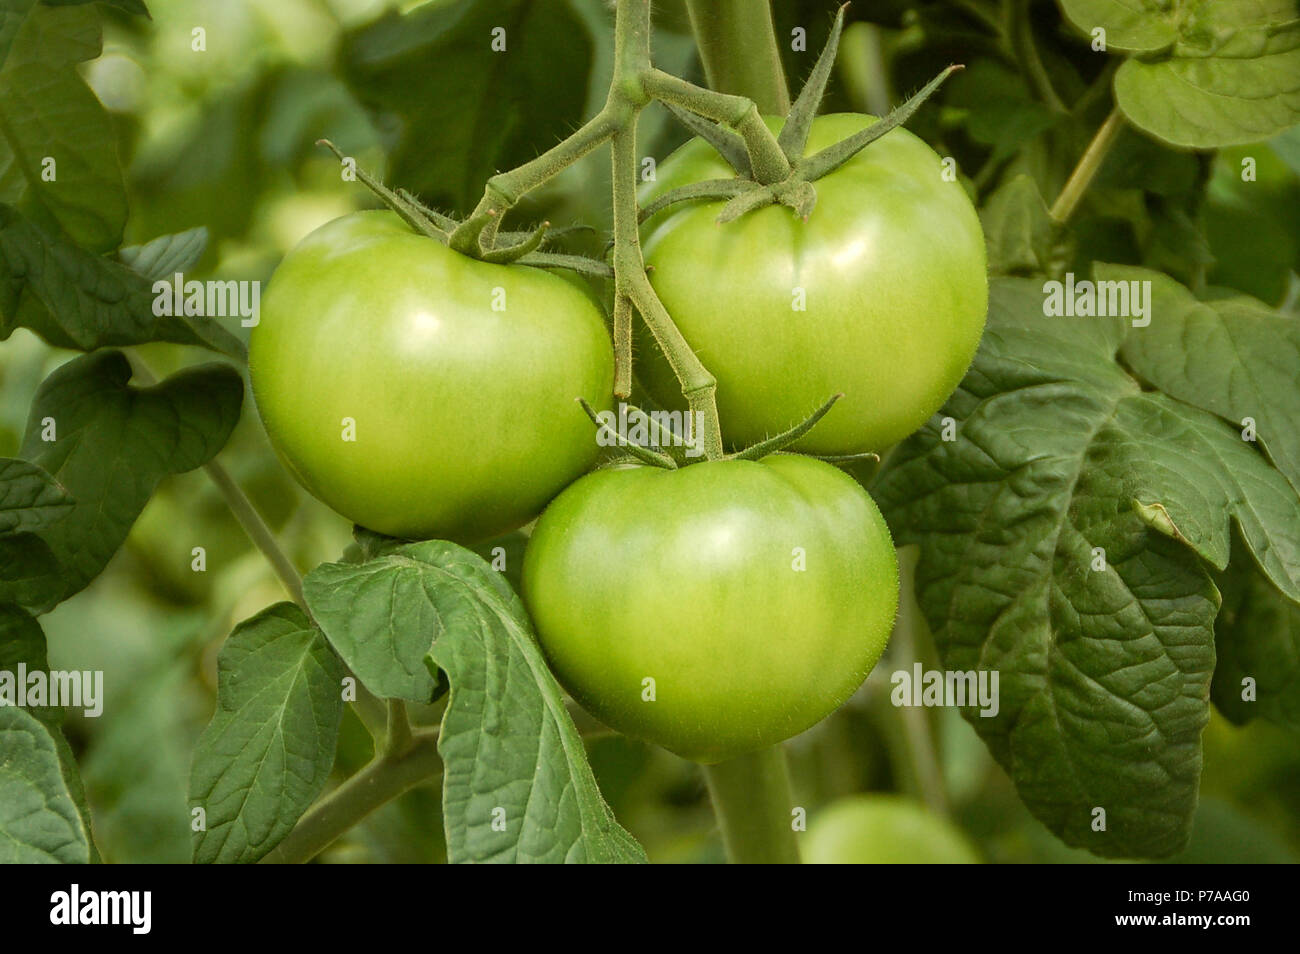 Tomato Wuppertal Agrarian Research Stock Photos Agrarian Research Stock Images